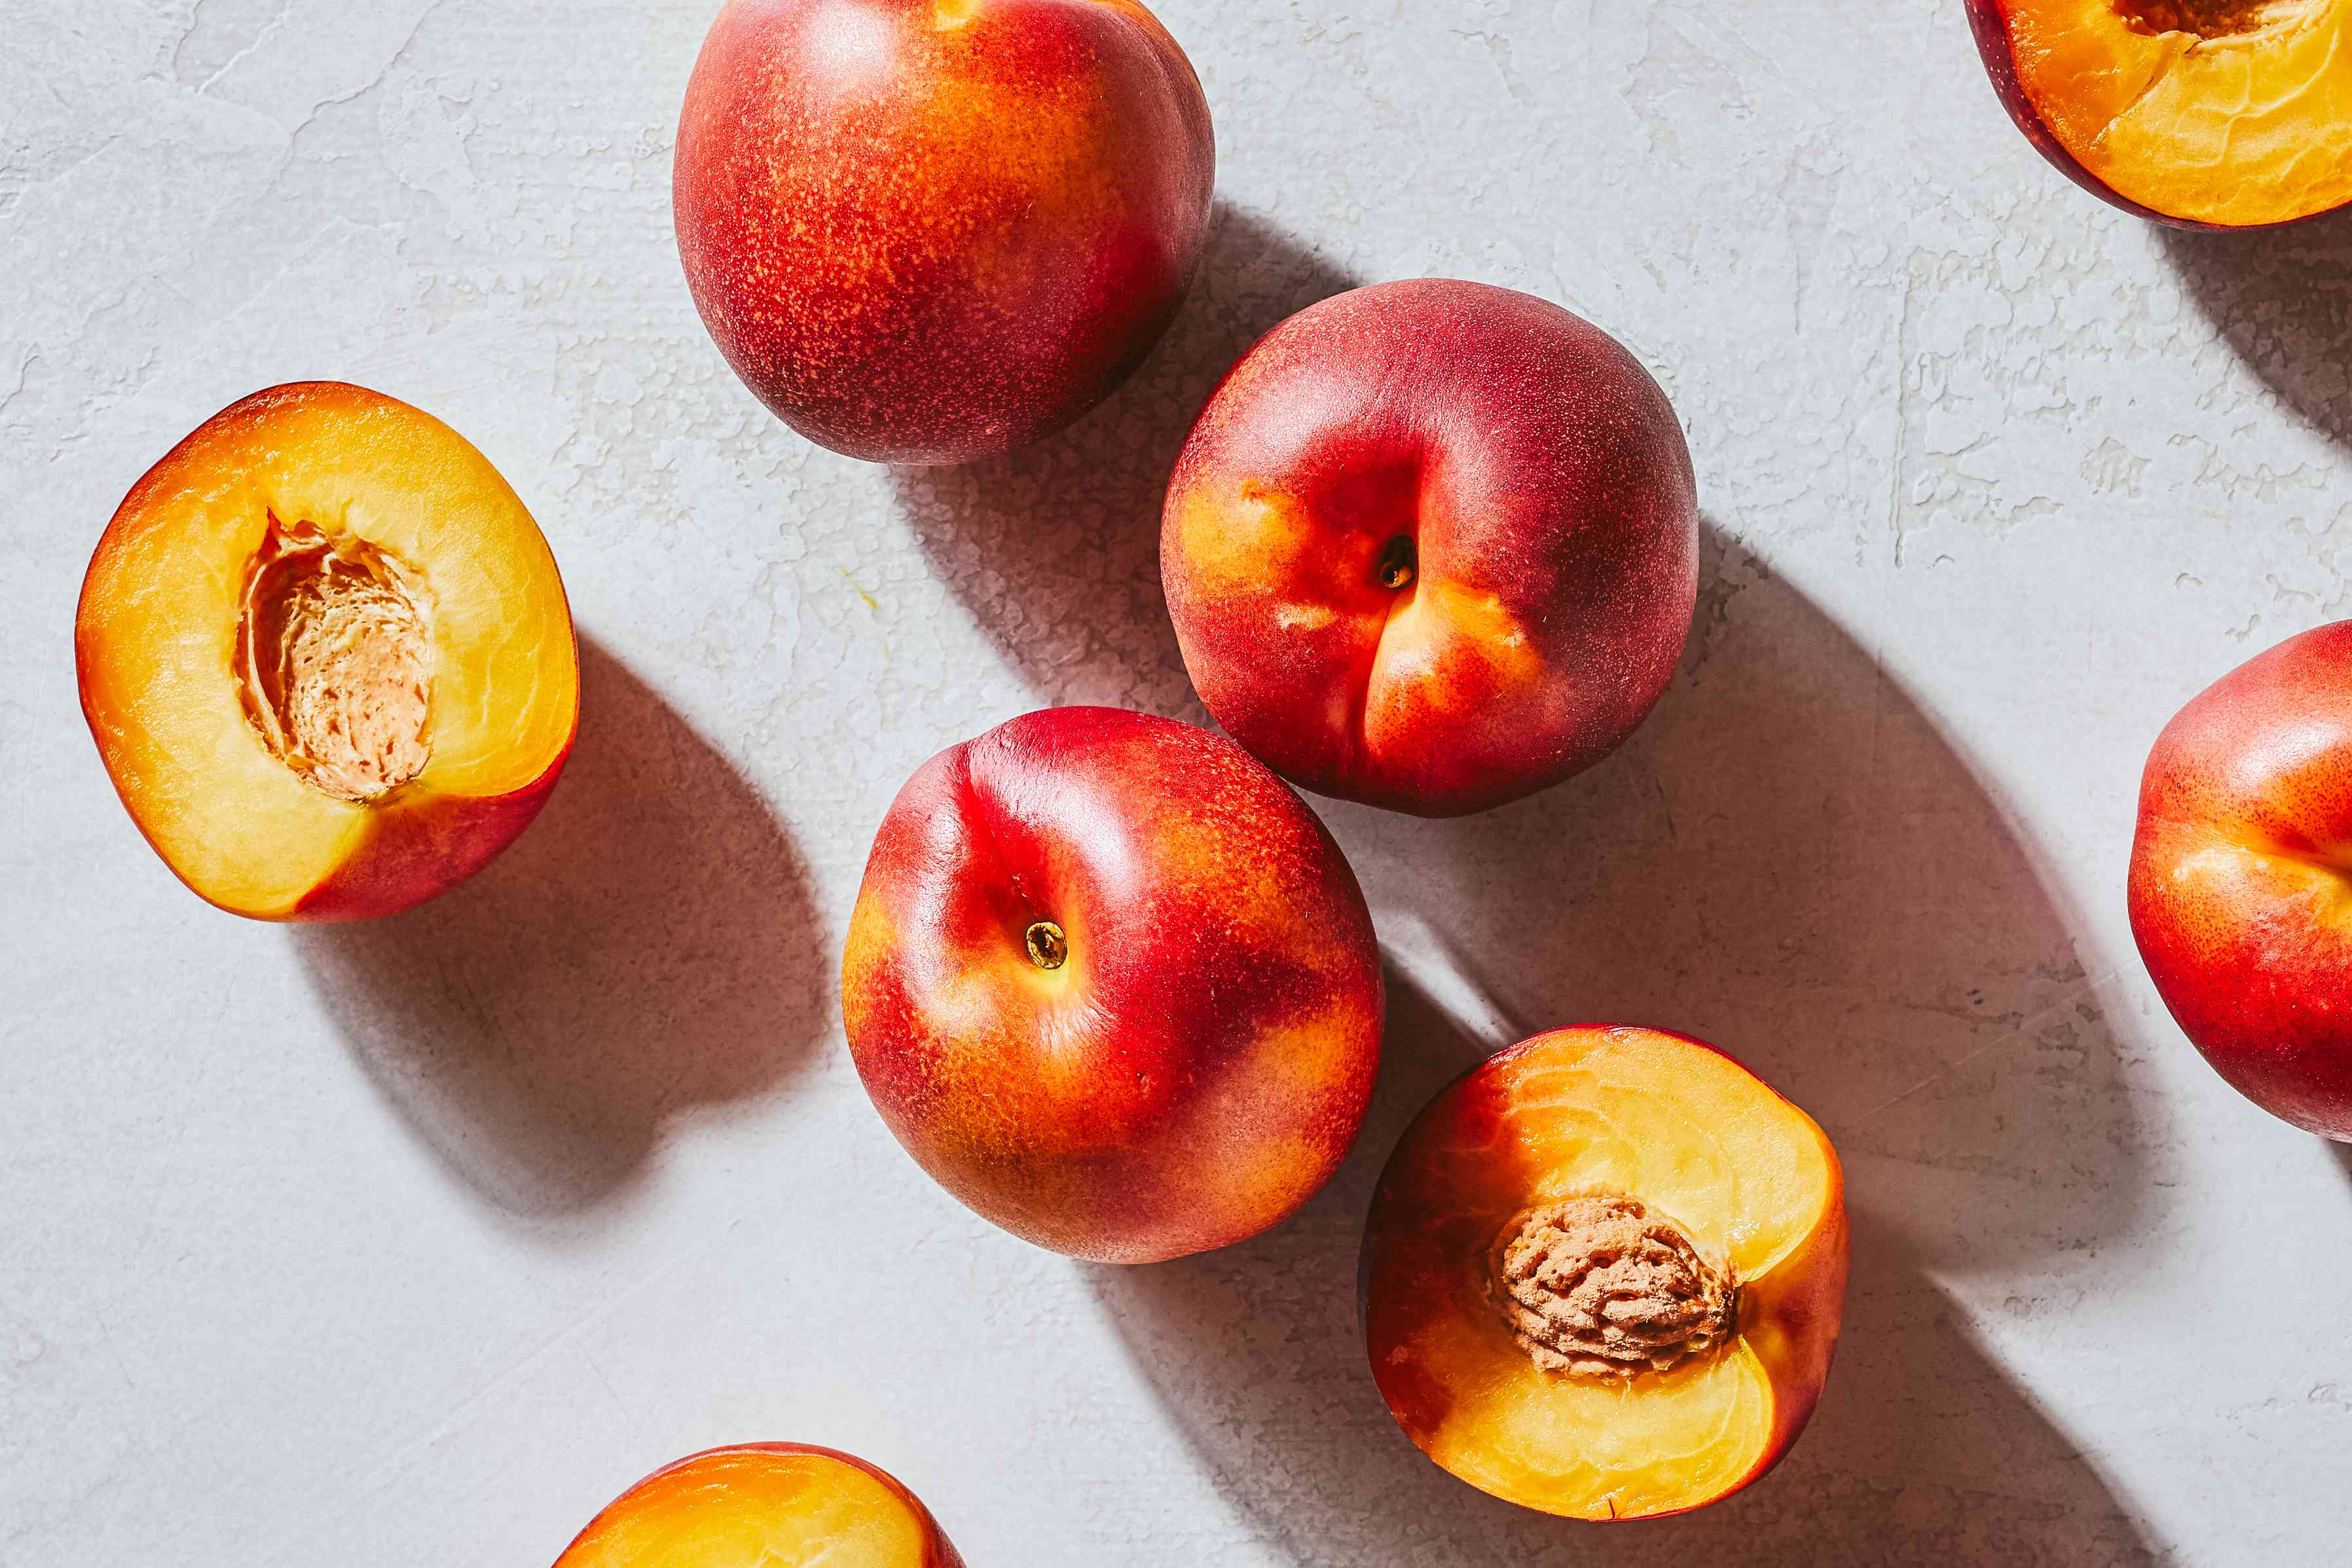 cut and whole nectarines with seed shown scattered on textured white surface